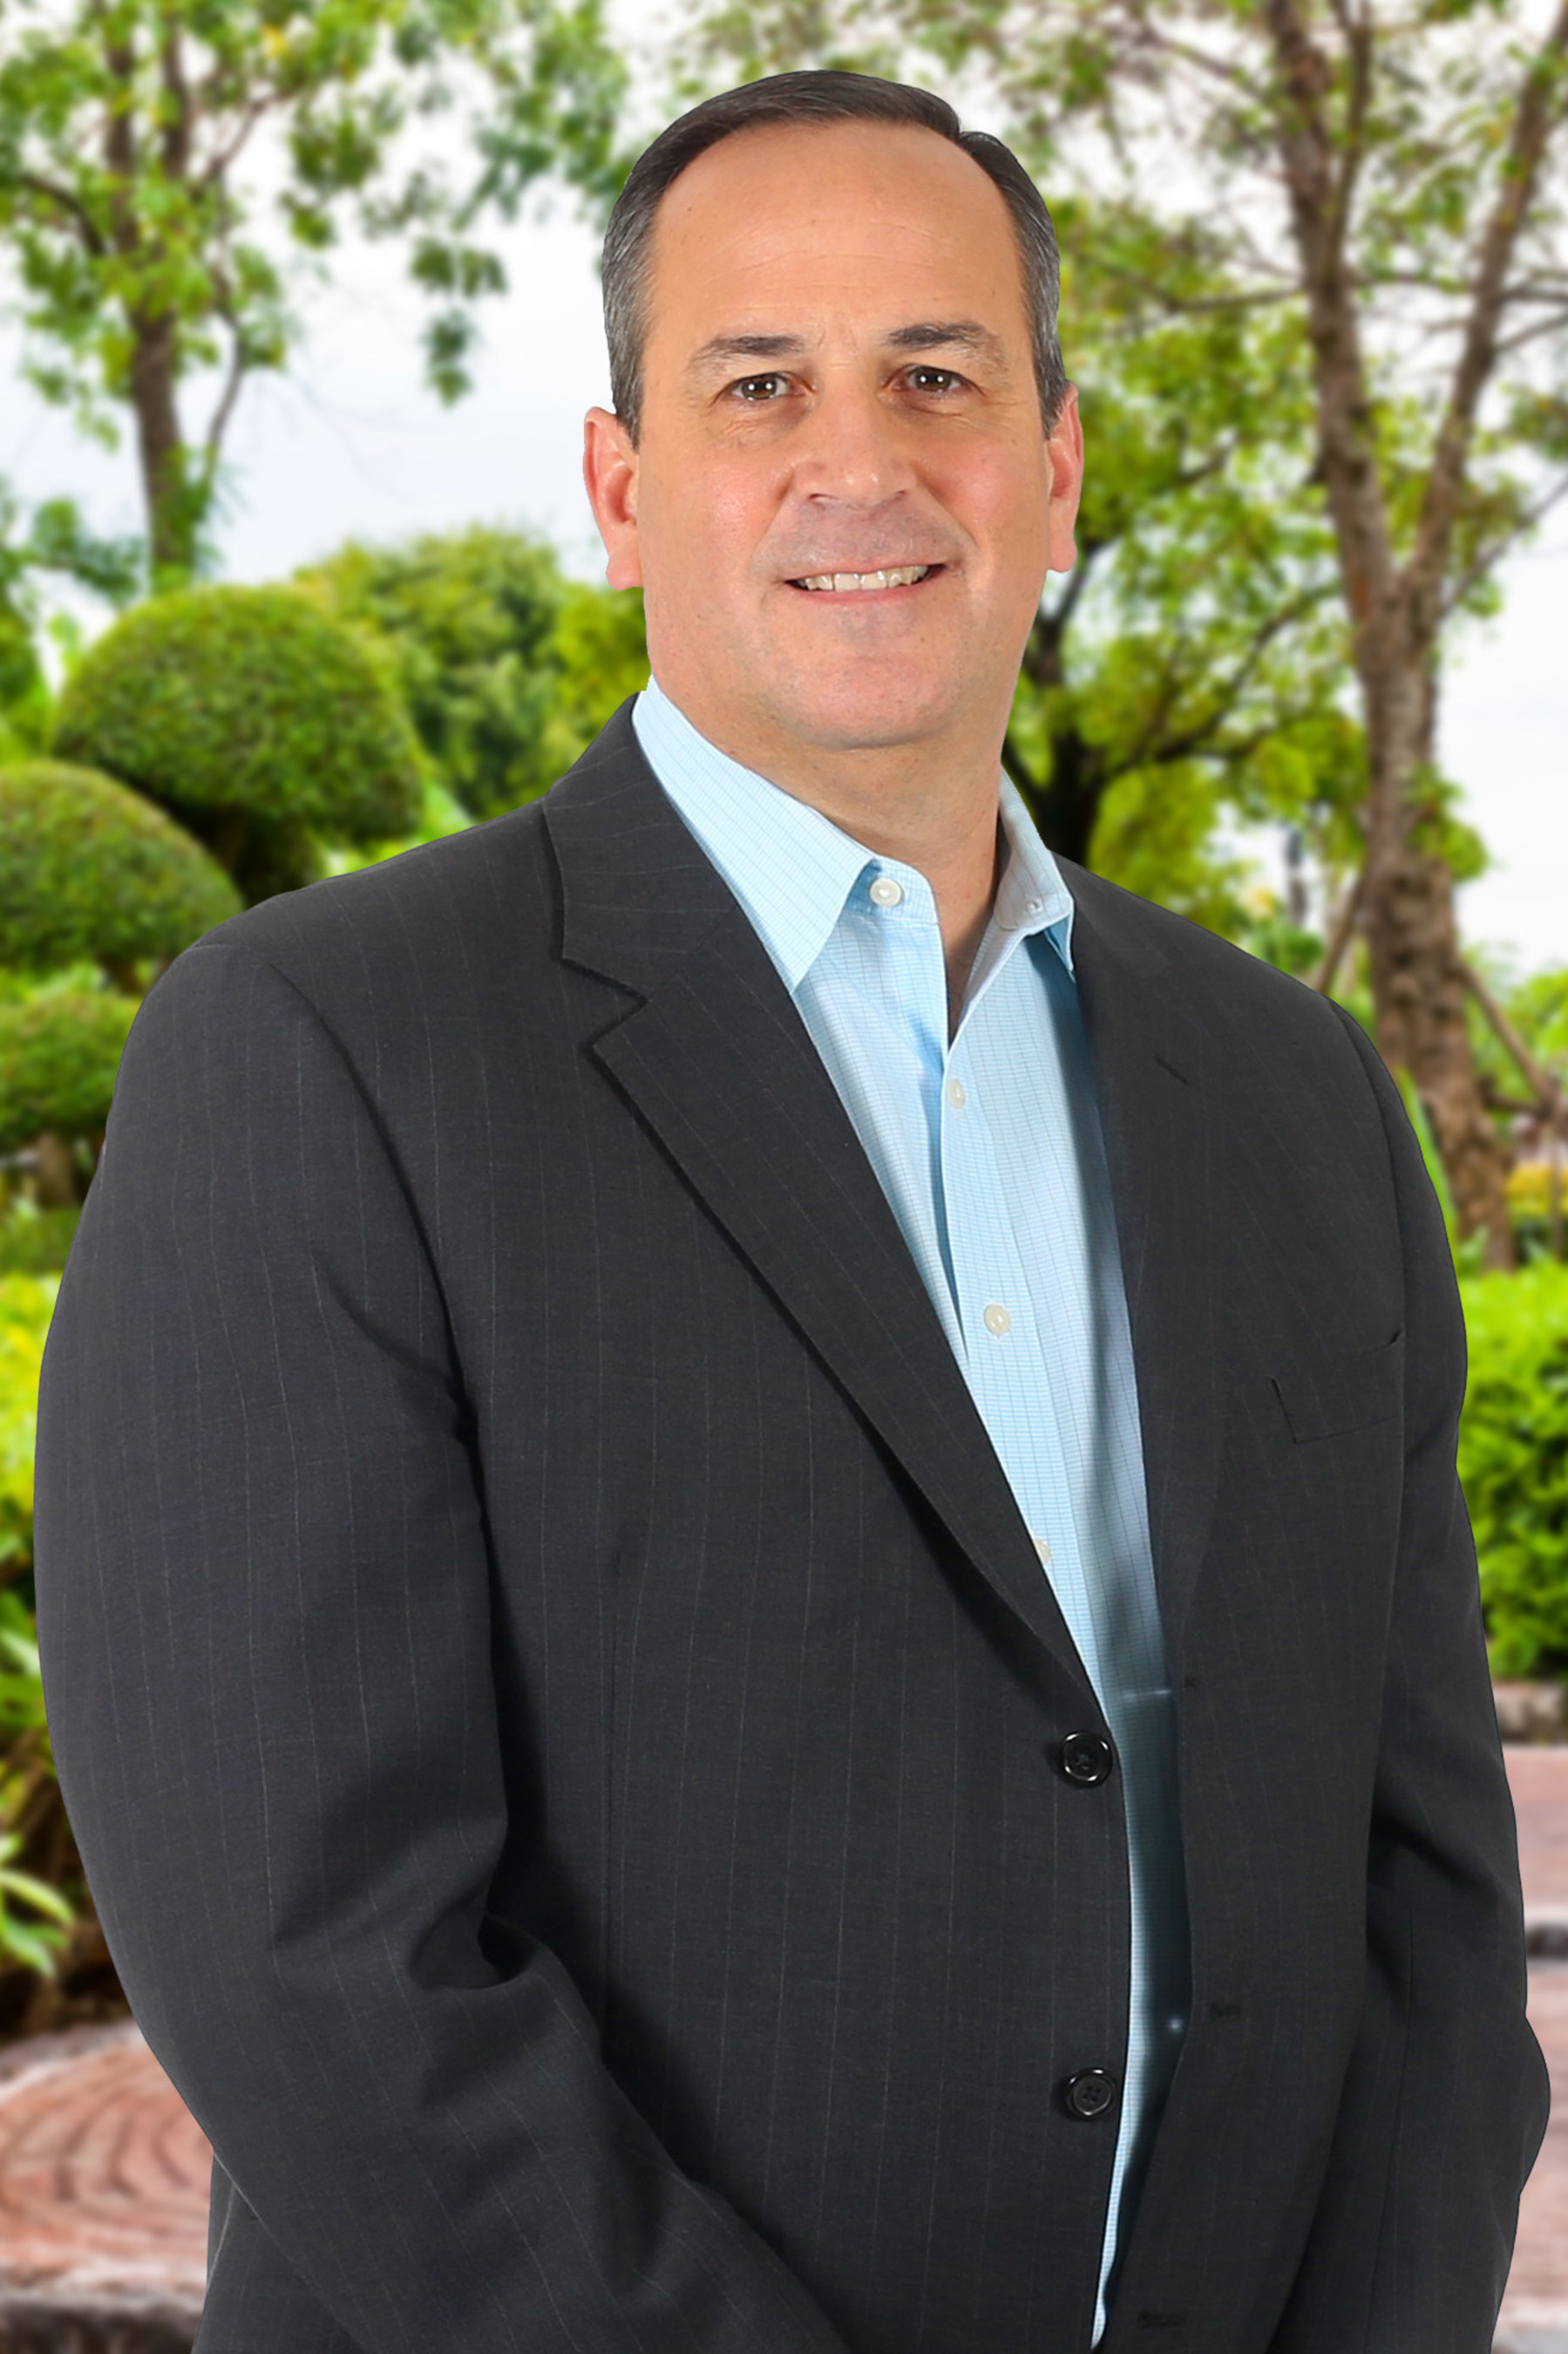 BCD Meetings & Events Global President Scott Graf